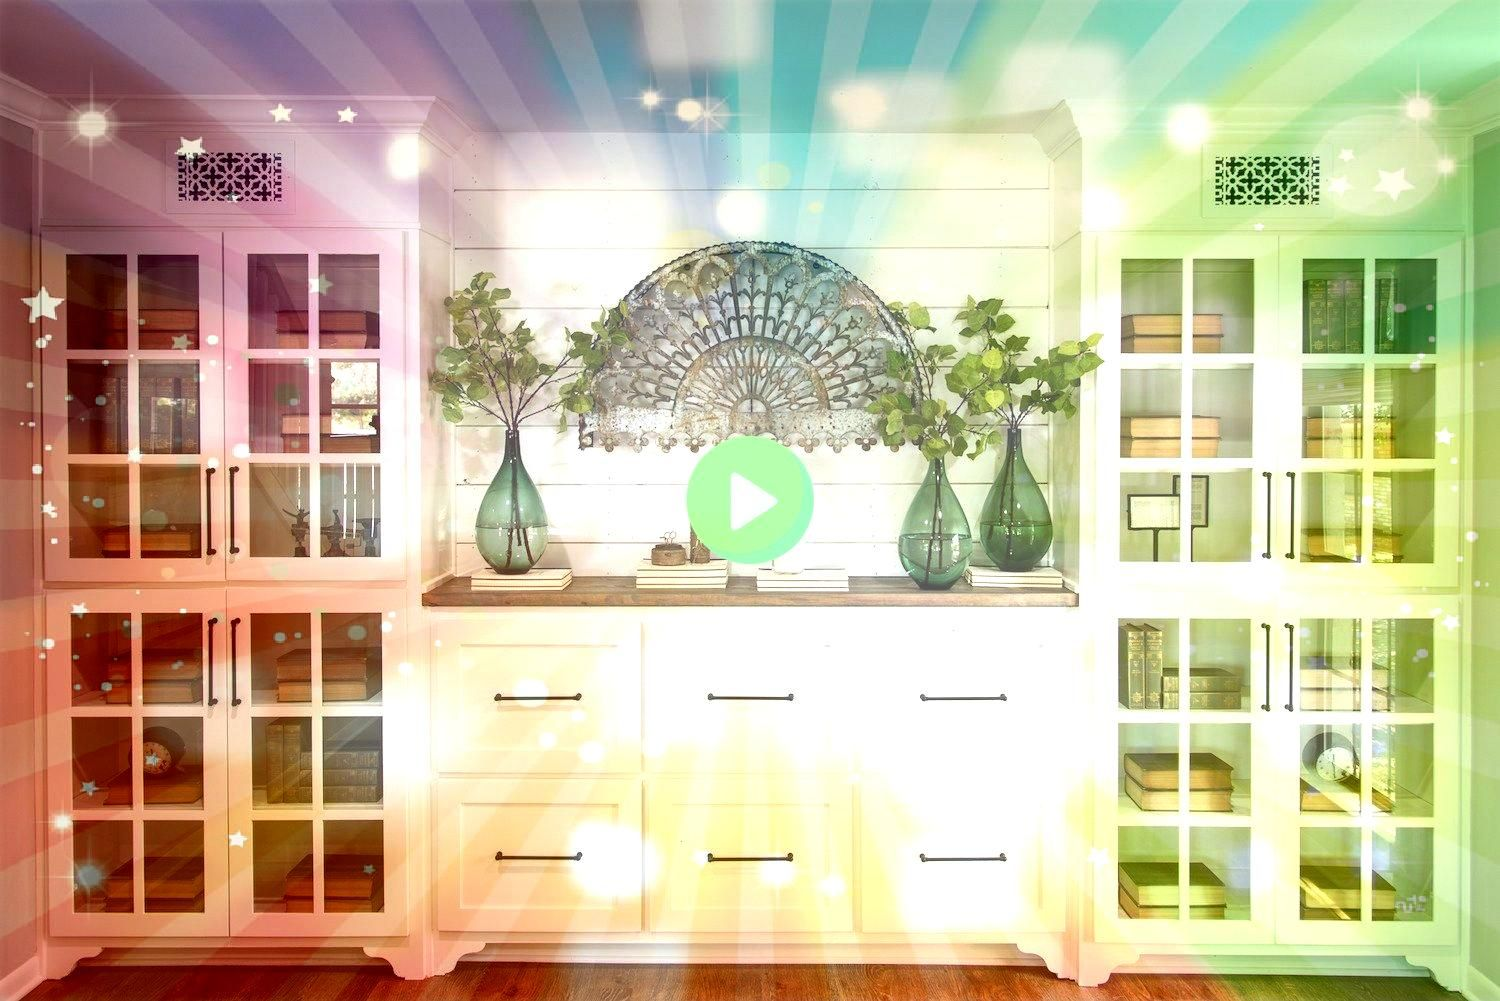 built in custom shelving in here to store and keep books photos and odds and ends built in Episode 11  The Prickly Pear HouseWe built in custom shelving in here to store...